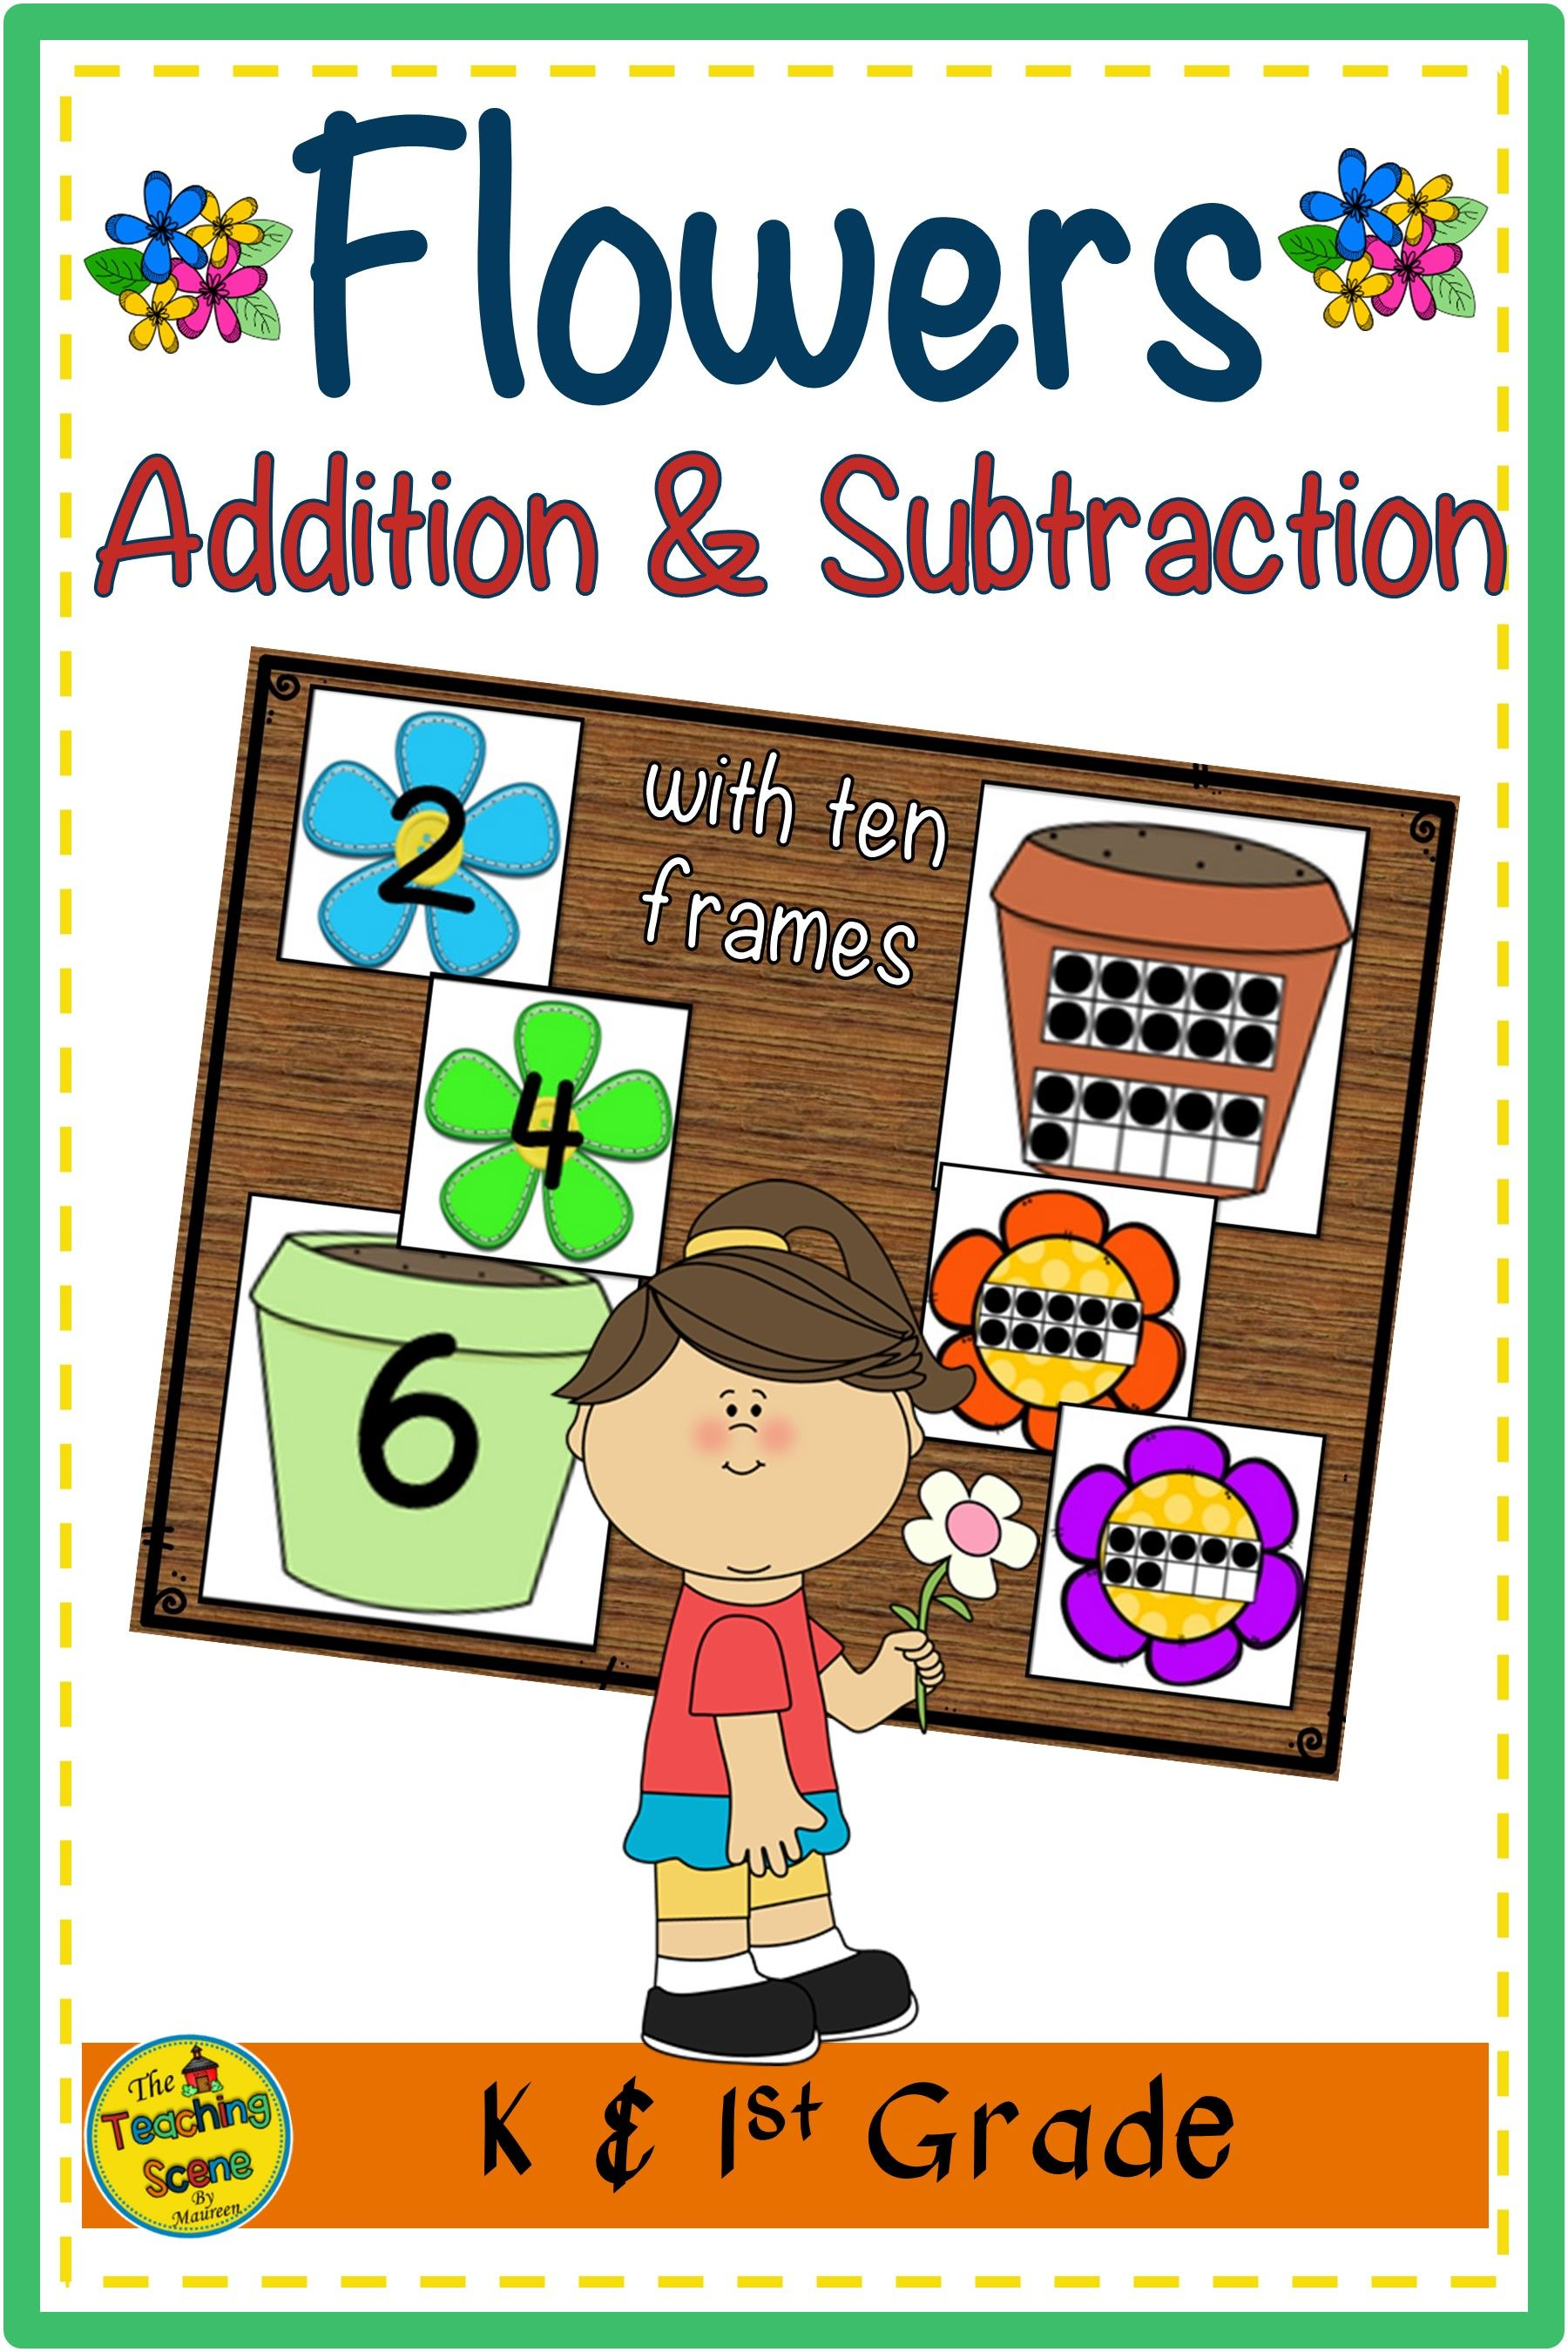 Flowers 2 Addend Addition Amp Subtraction With Ten Frames In